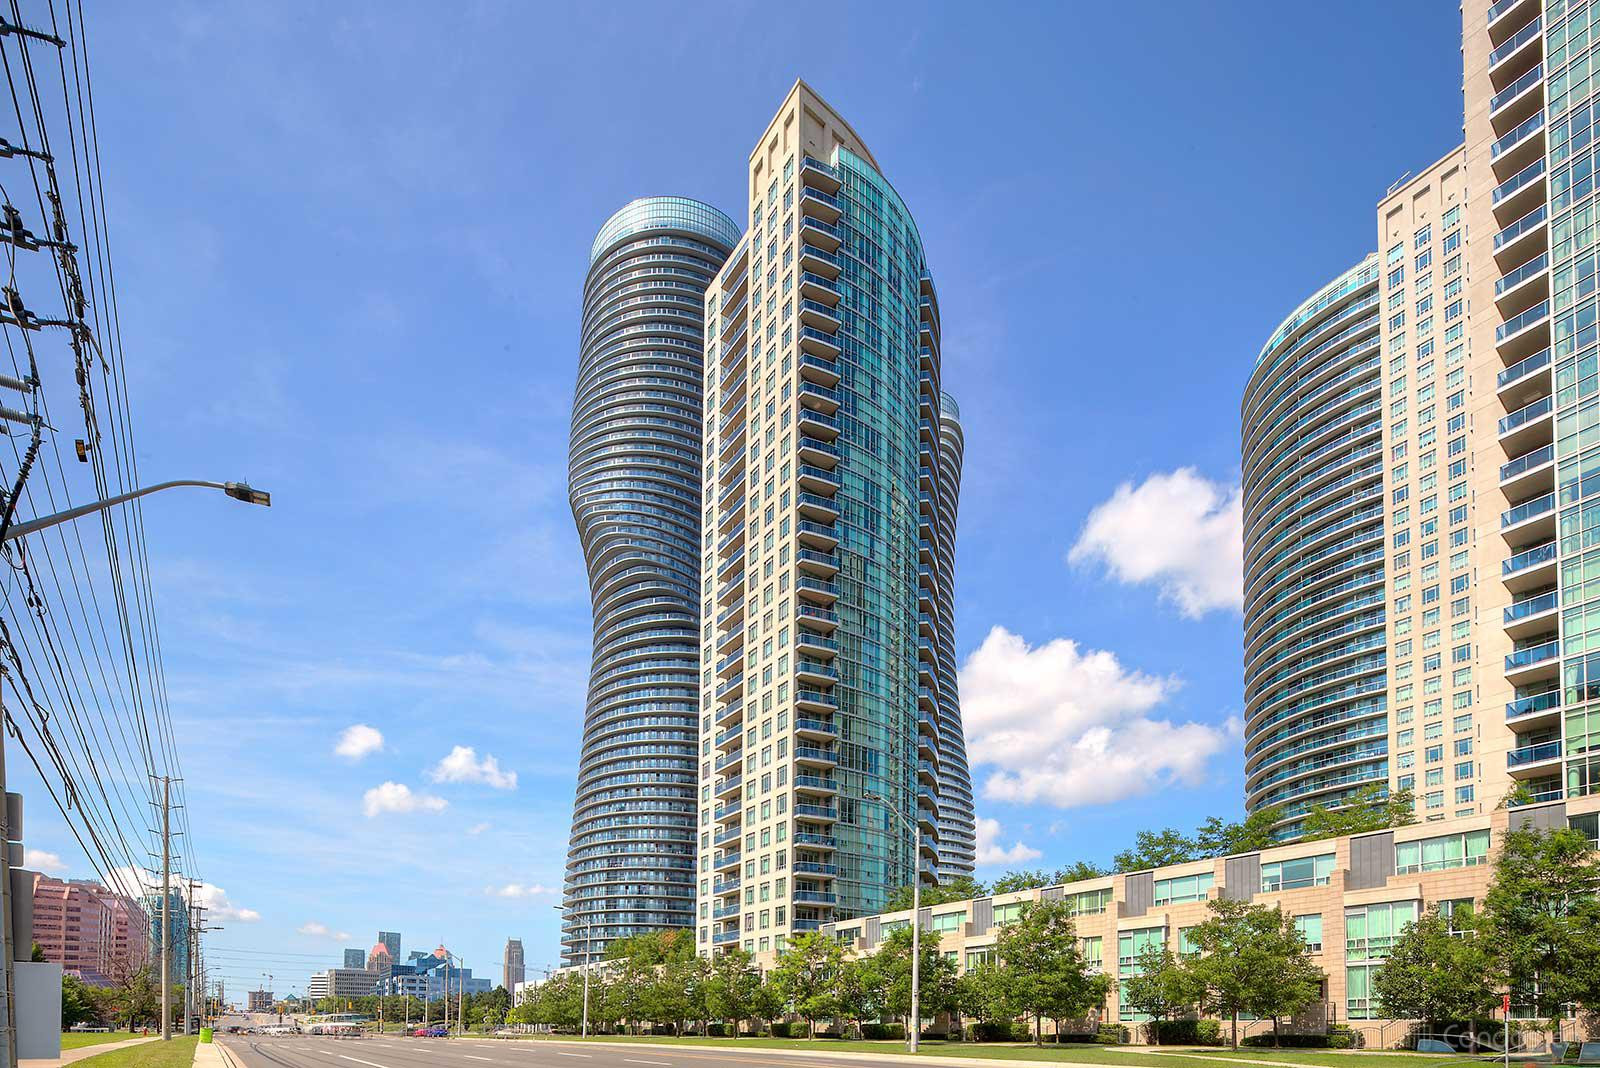 The Absolute Ⅱ at 70 Absolute Ave, Mississauga 0